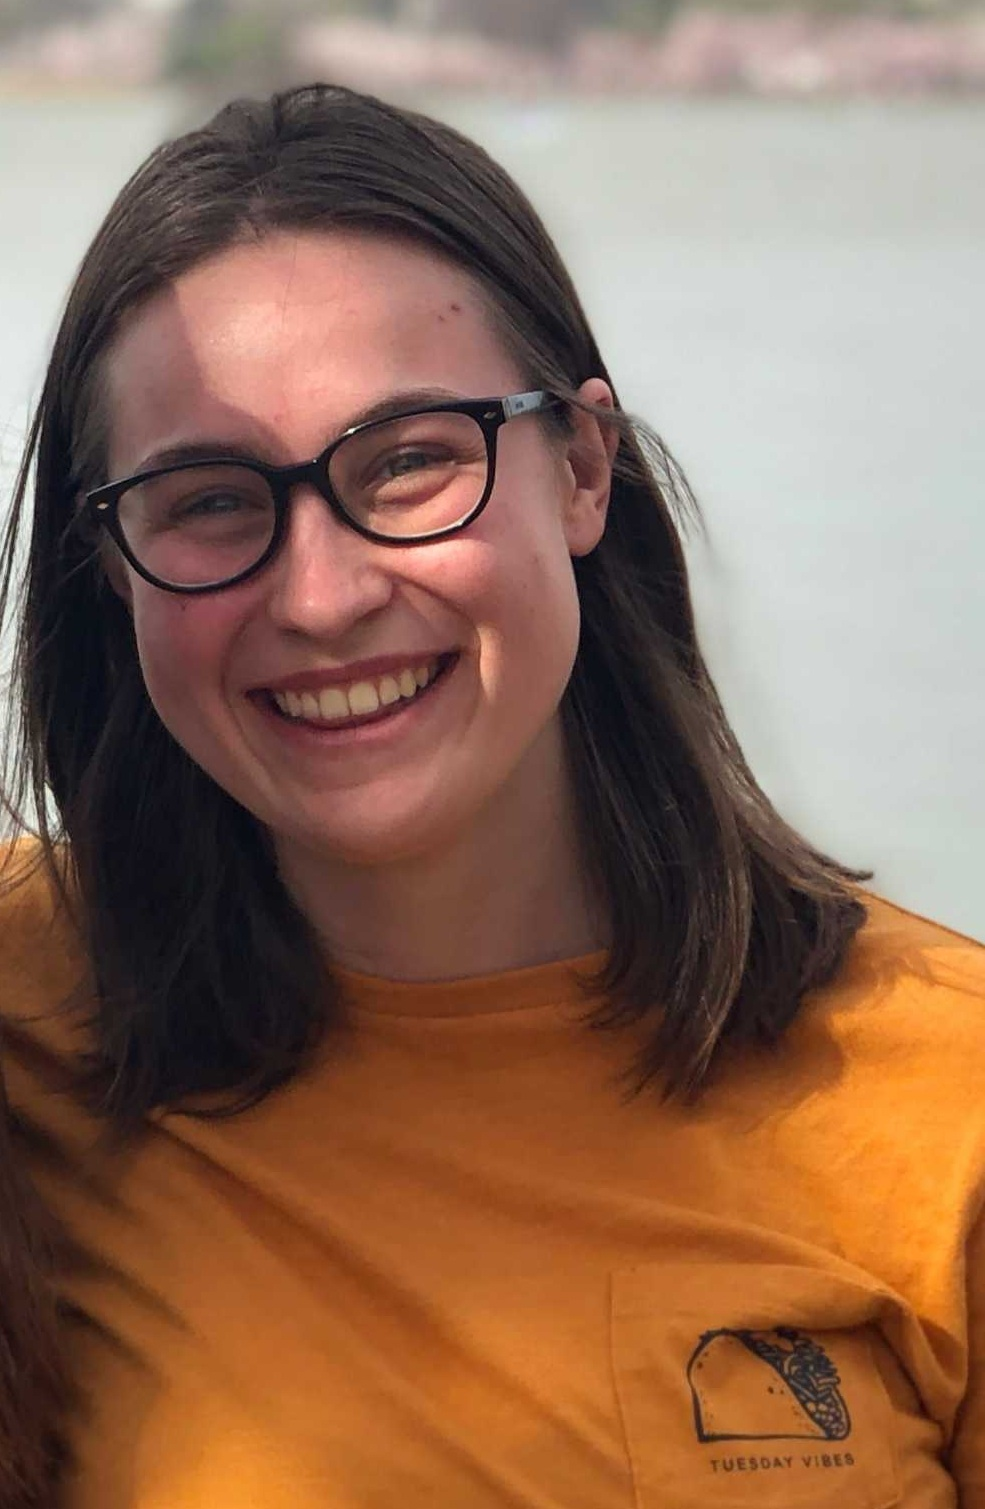 Hannah Mankle is a Masters student in Mechanical Engineering at Oregon State University. She is a part of the Design Engineering Lab and started her research in wave energy as an undergrad in 2017.